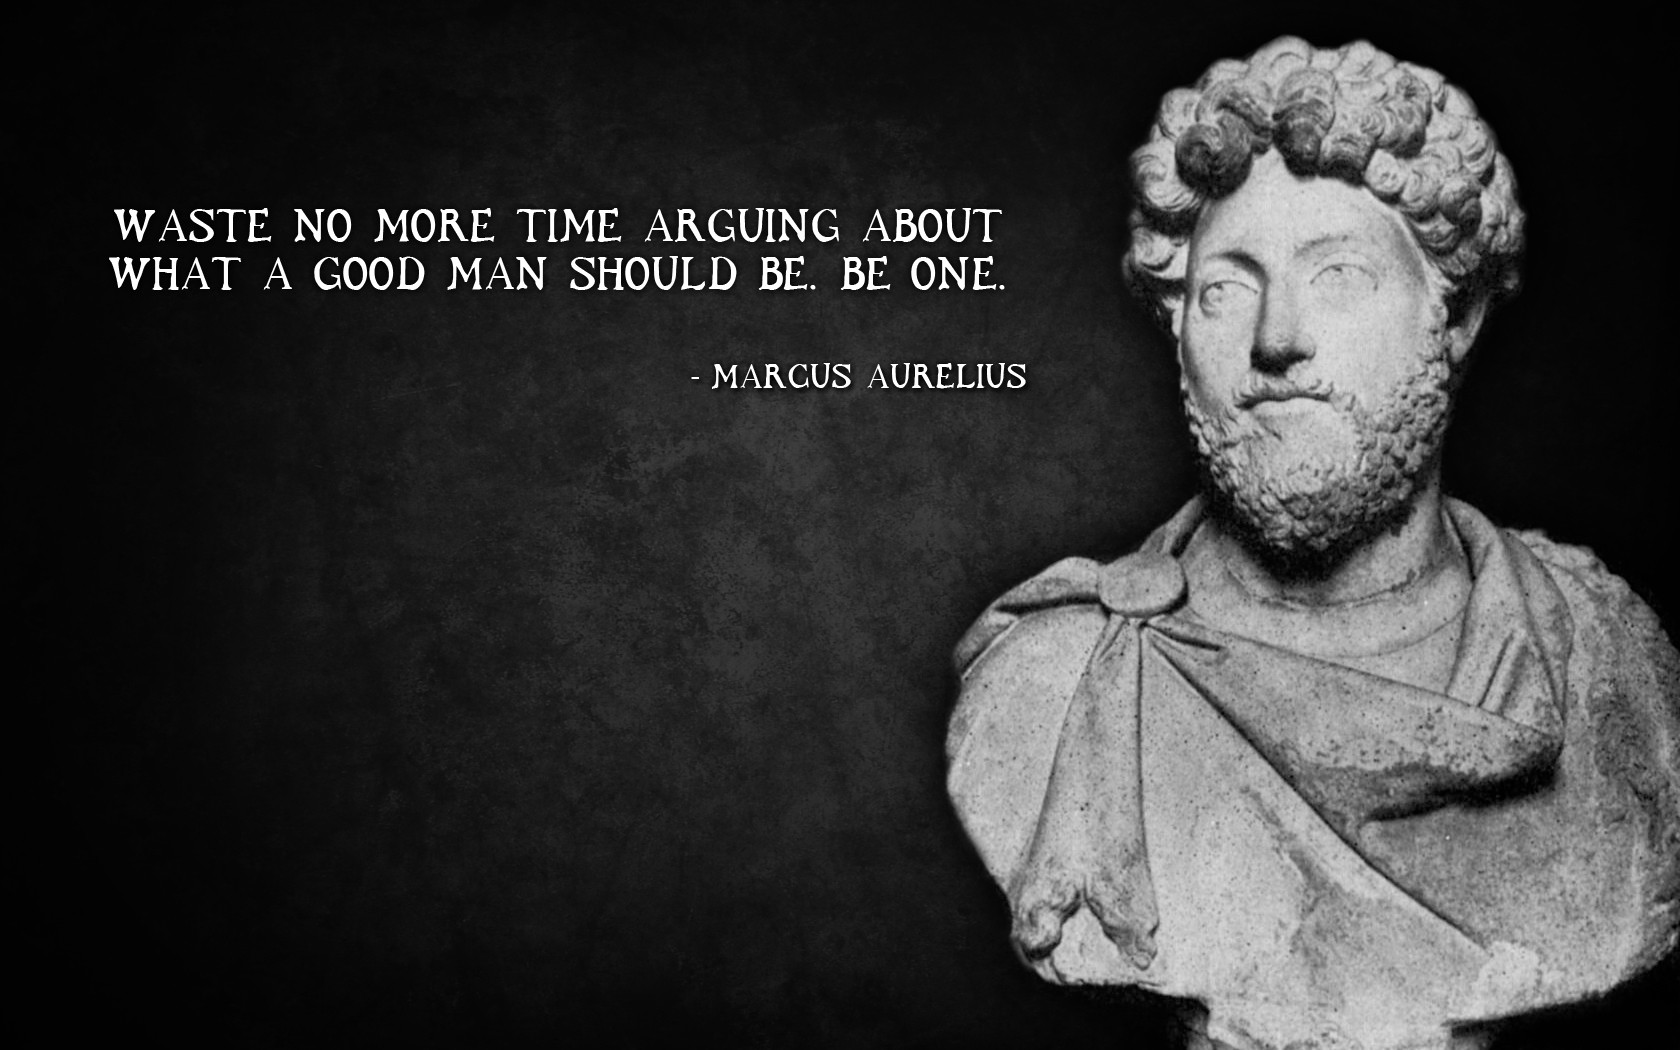 One No More Arguing Be Waste Aurelius Be Man What Time Good About Should Marcus